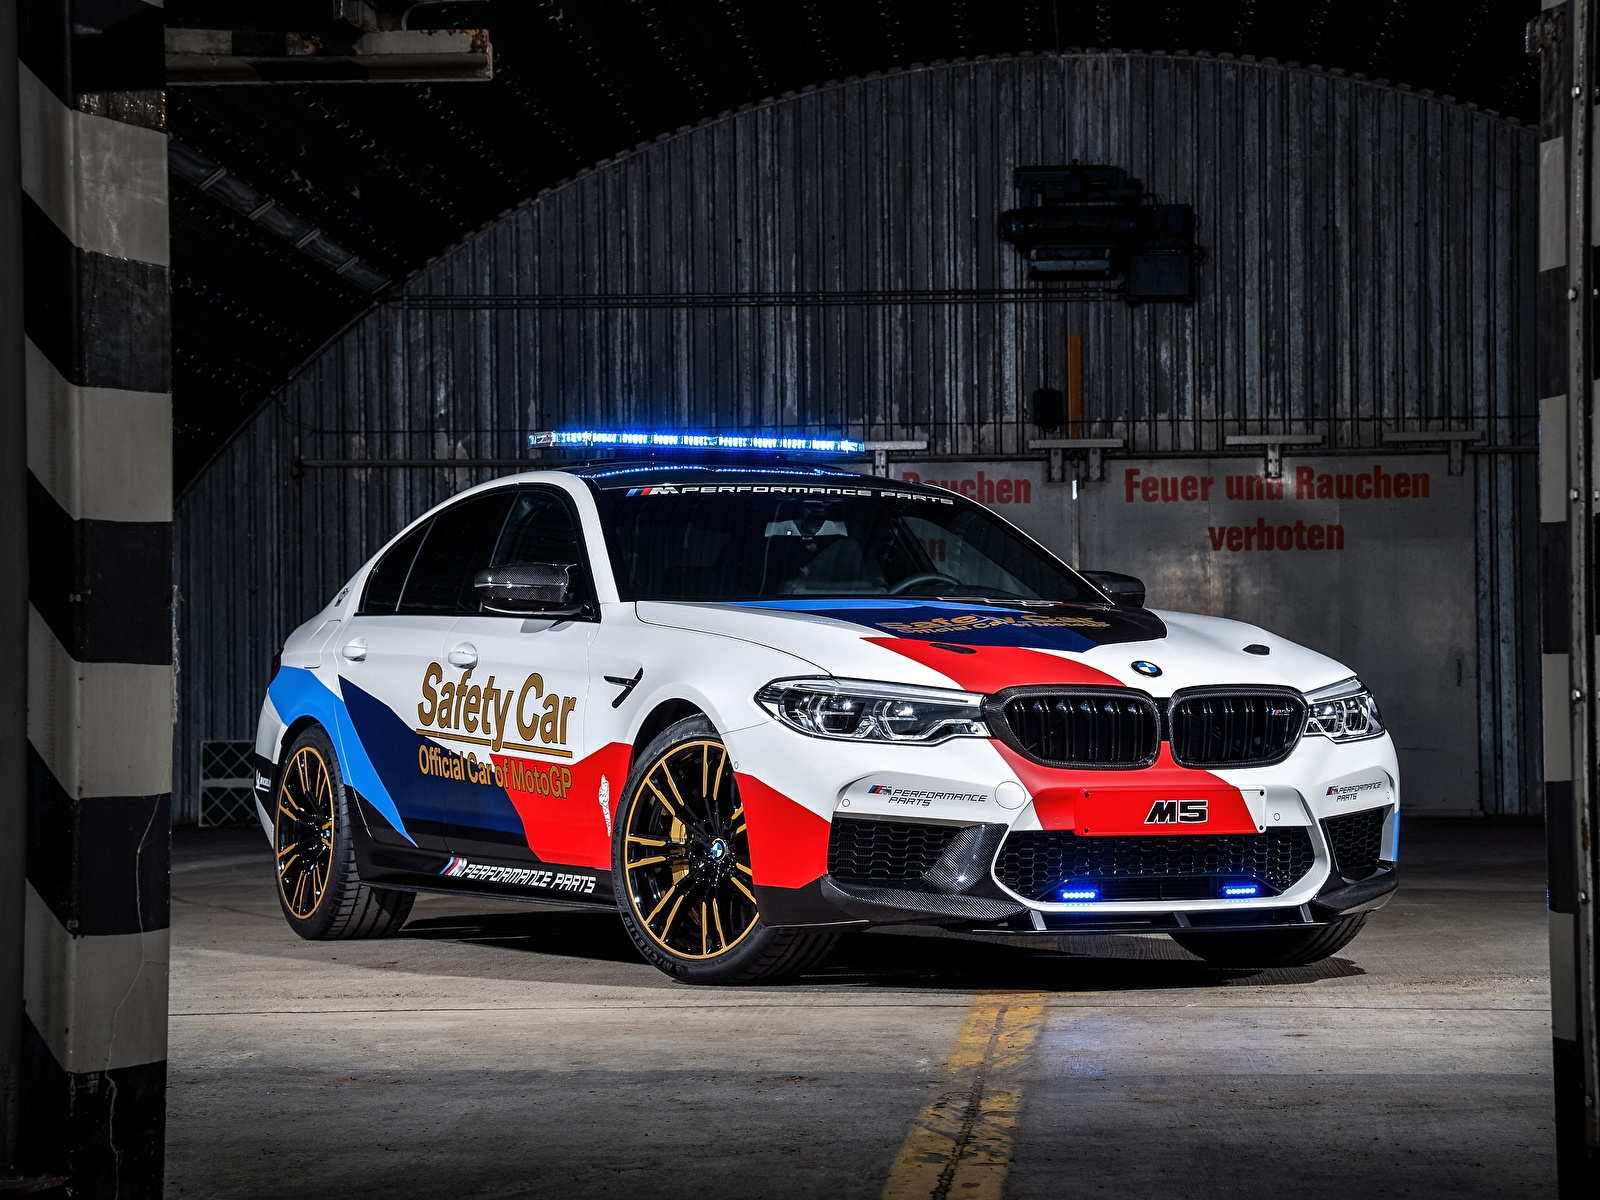 Images BMW Tuning 2018 M5 MotoGP Safety Car auto 1600x1200 Cars automobile